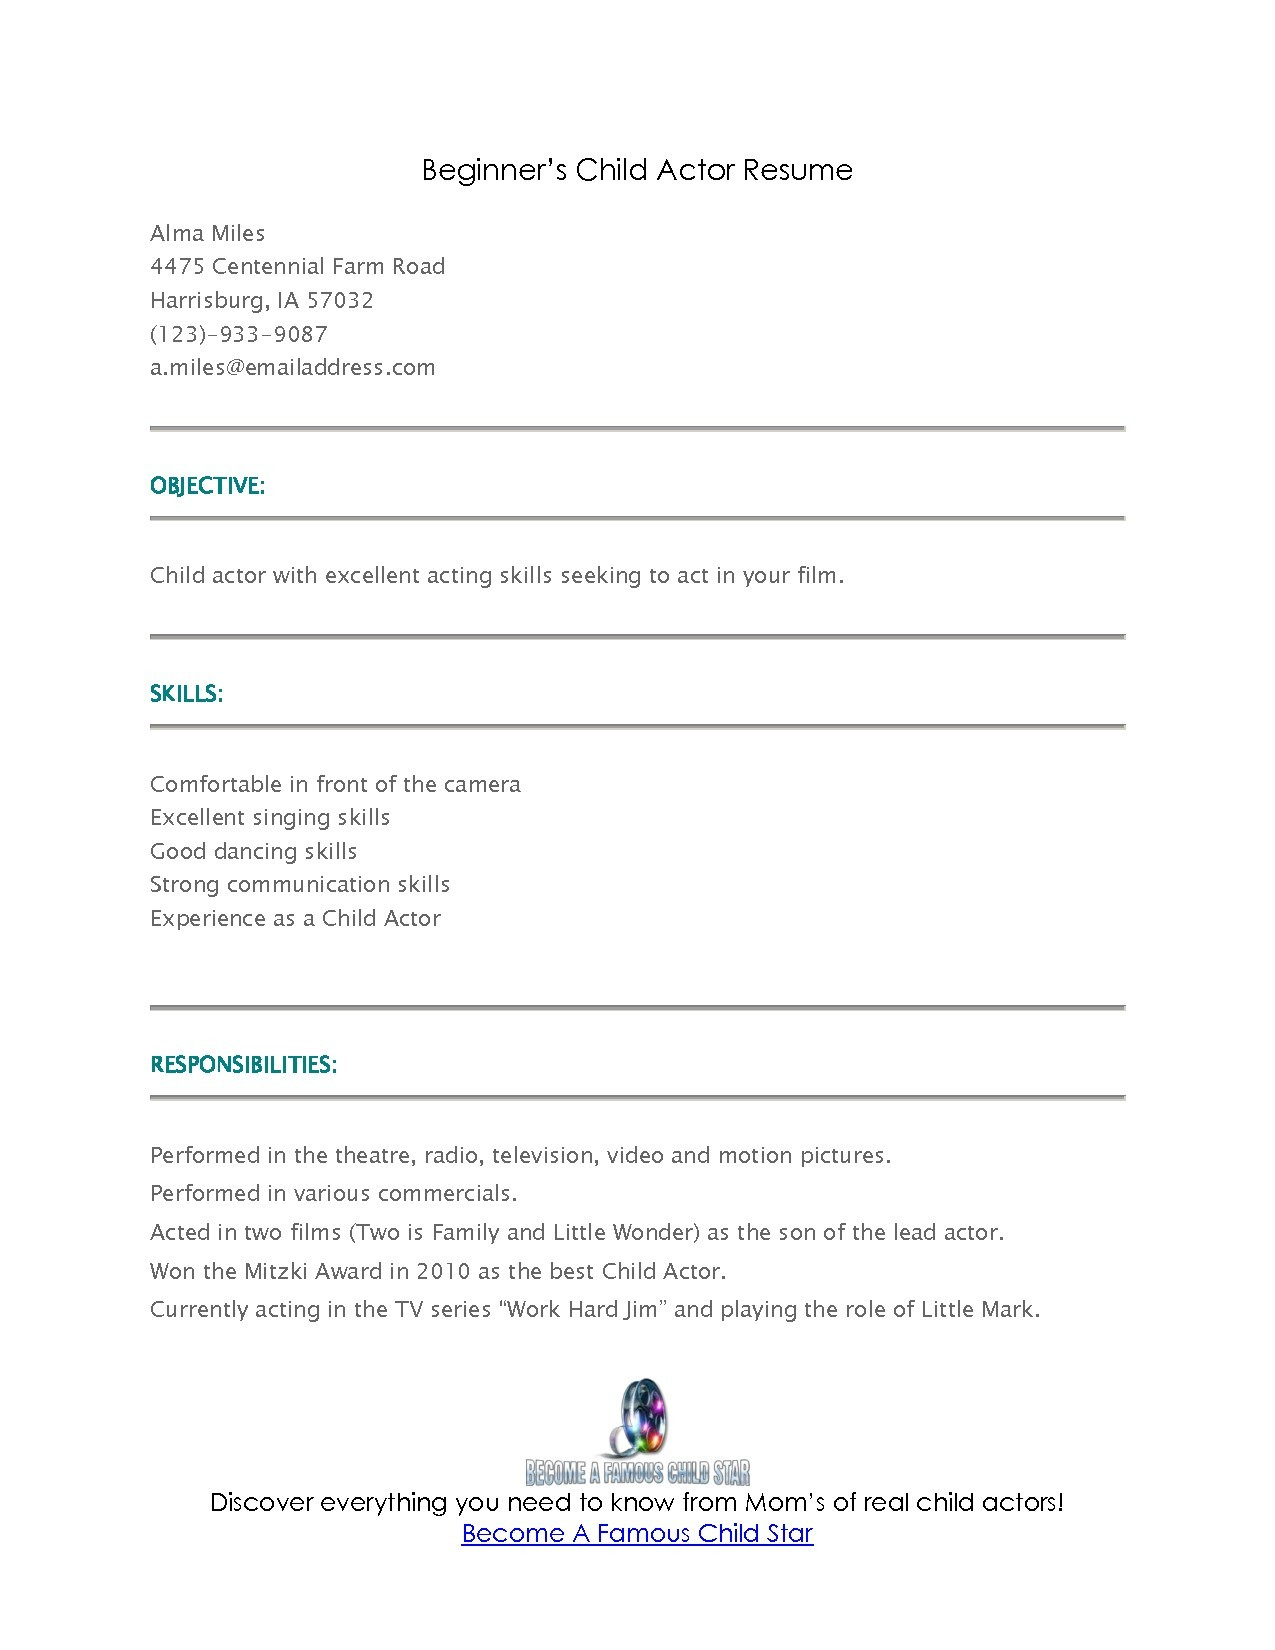 Beginner Actor Resume Template - 23 Beginners Resume Template